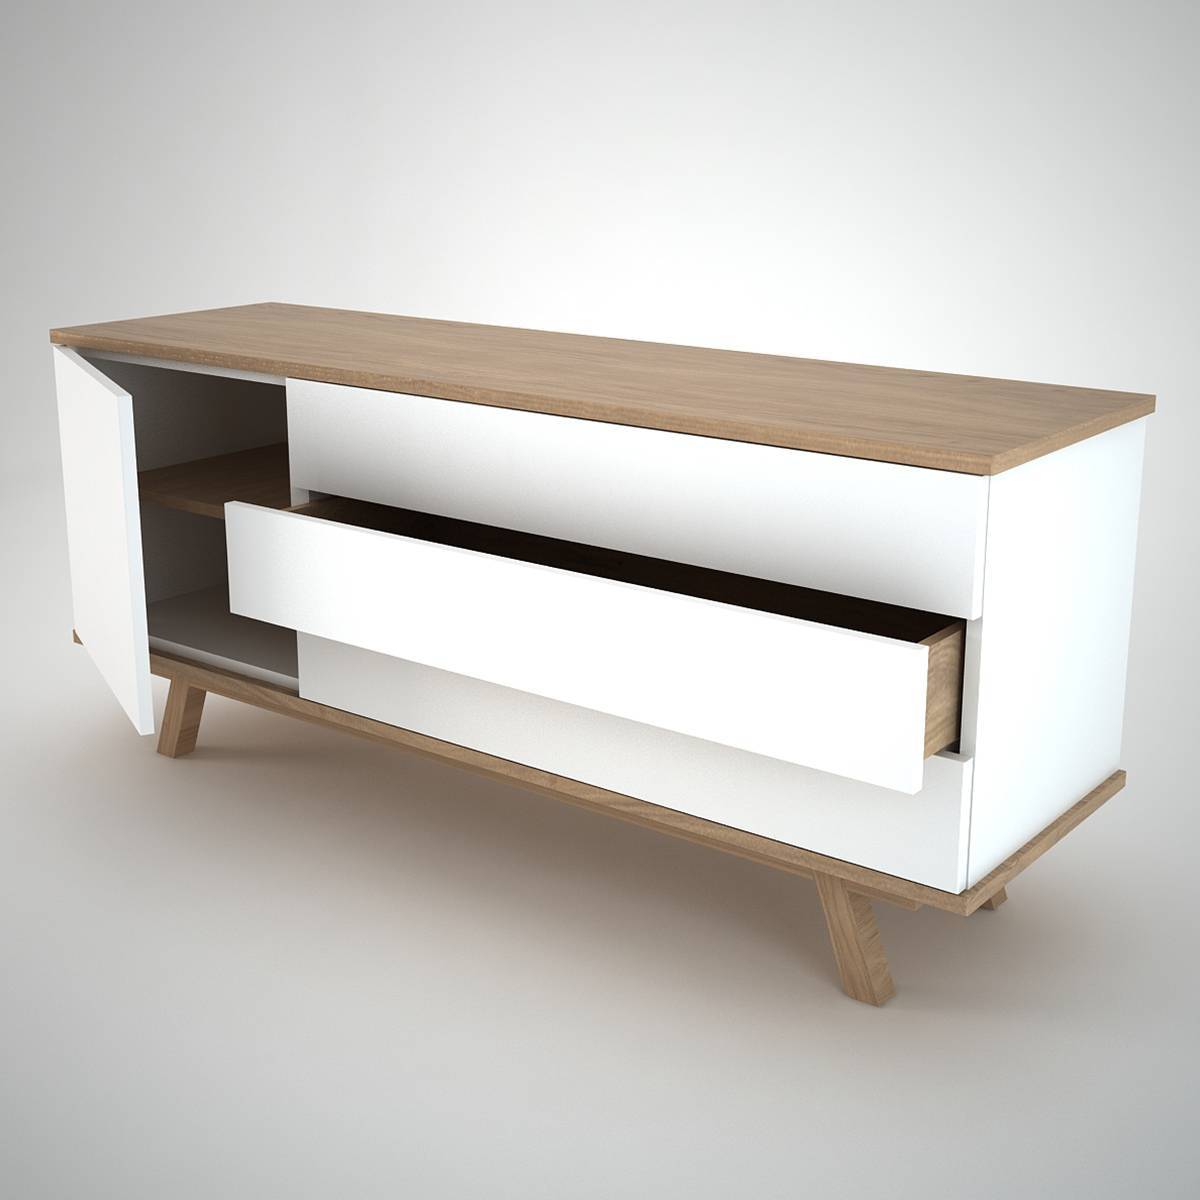 Furniture: Beautiful Profile Modern Sideboard For Living Room in White And Wood Sideboards (Image 6 of 30)